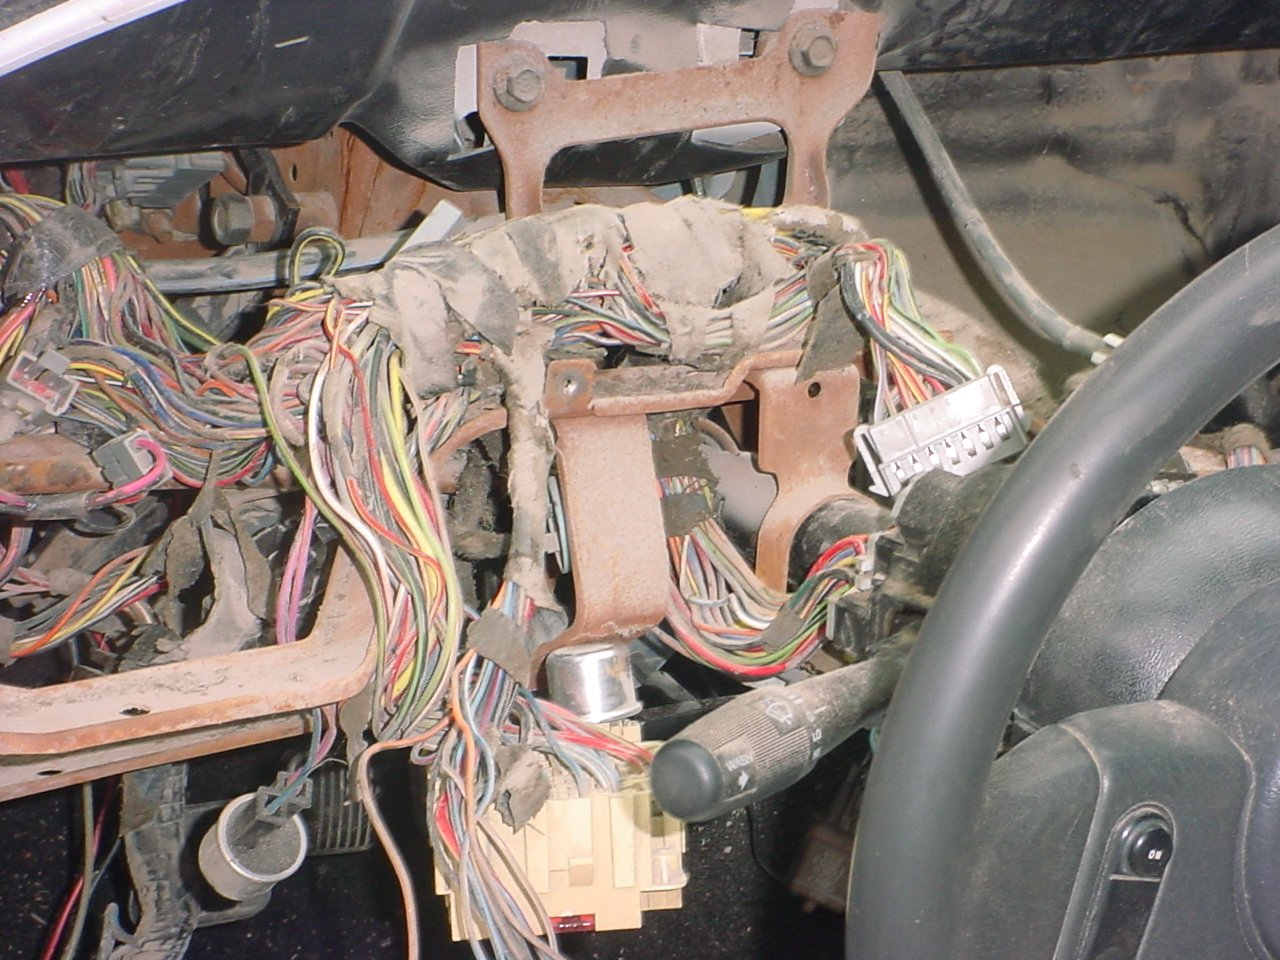 12808d1134269196 underdash wiring diagram dsc01663 underdash wiring diagram ford mustang forum Chevy Wiring Harness Diagram at virtualis.co